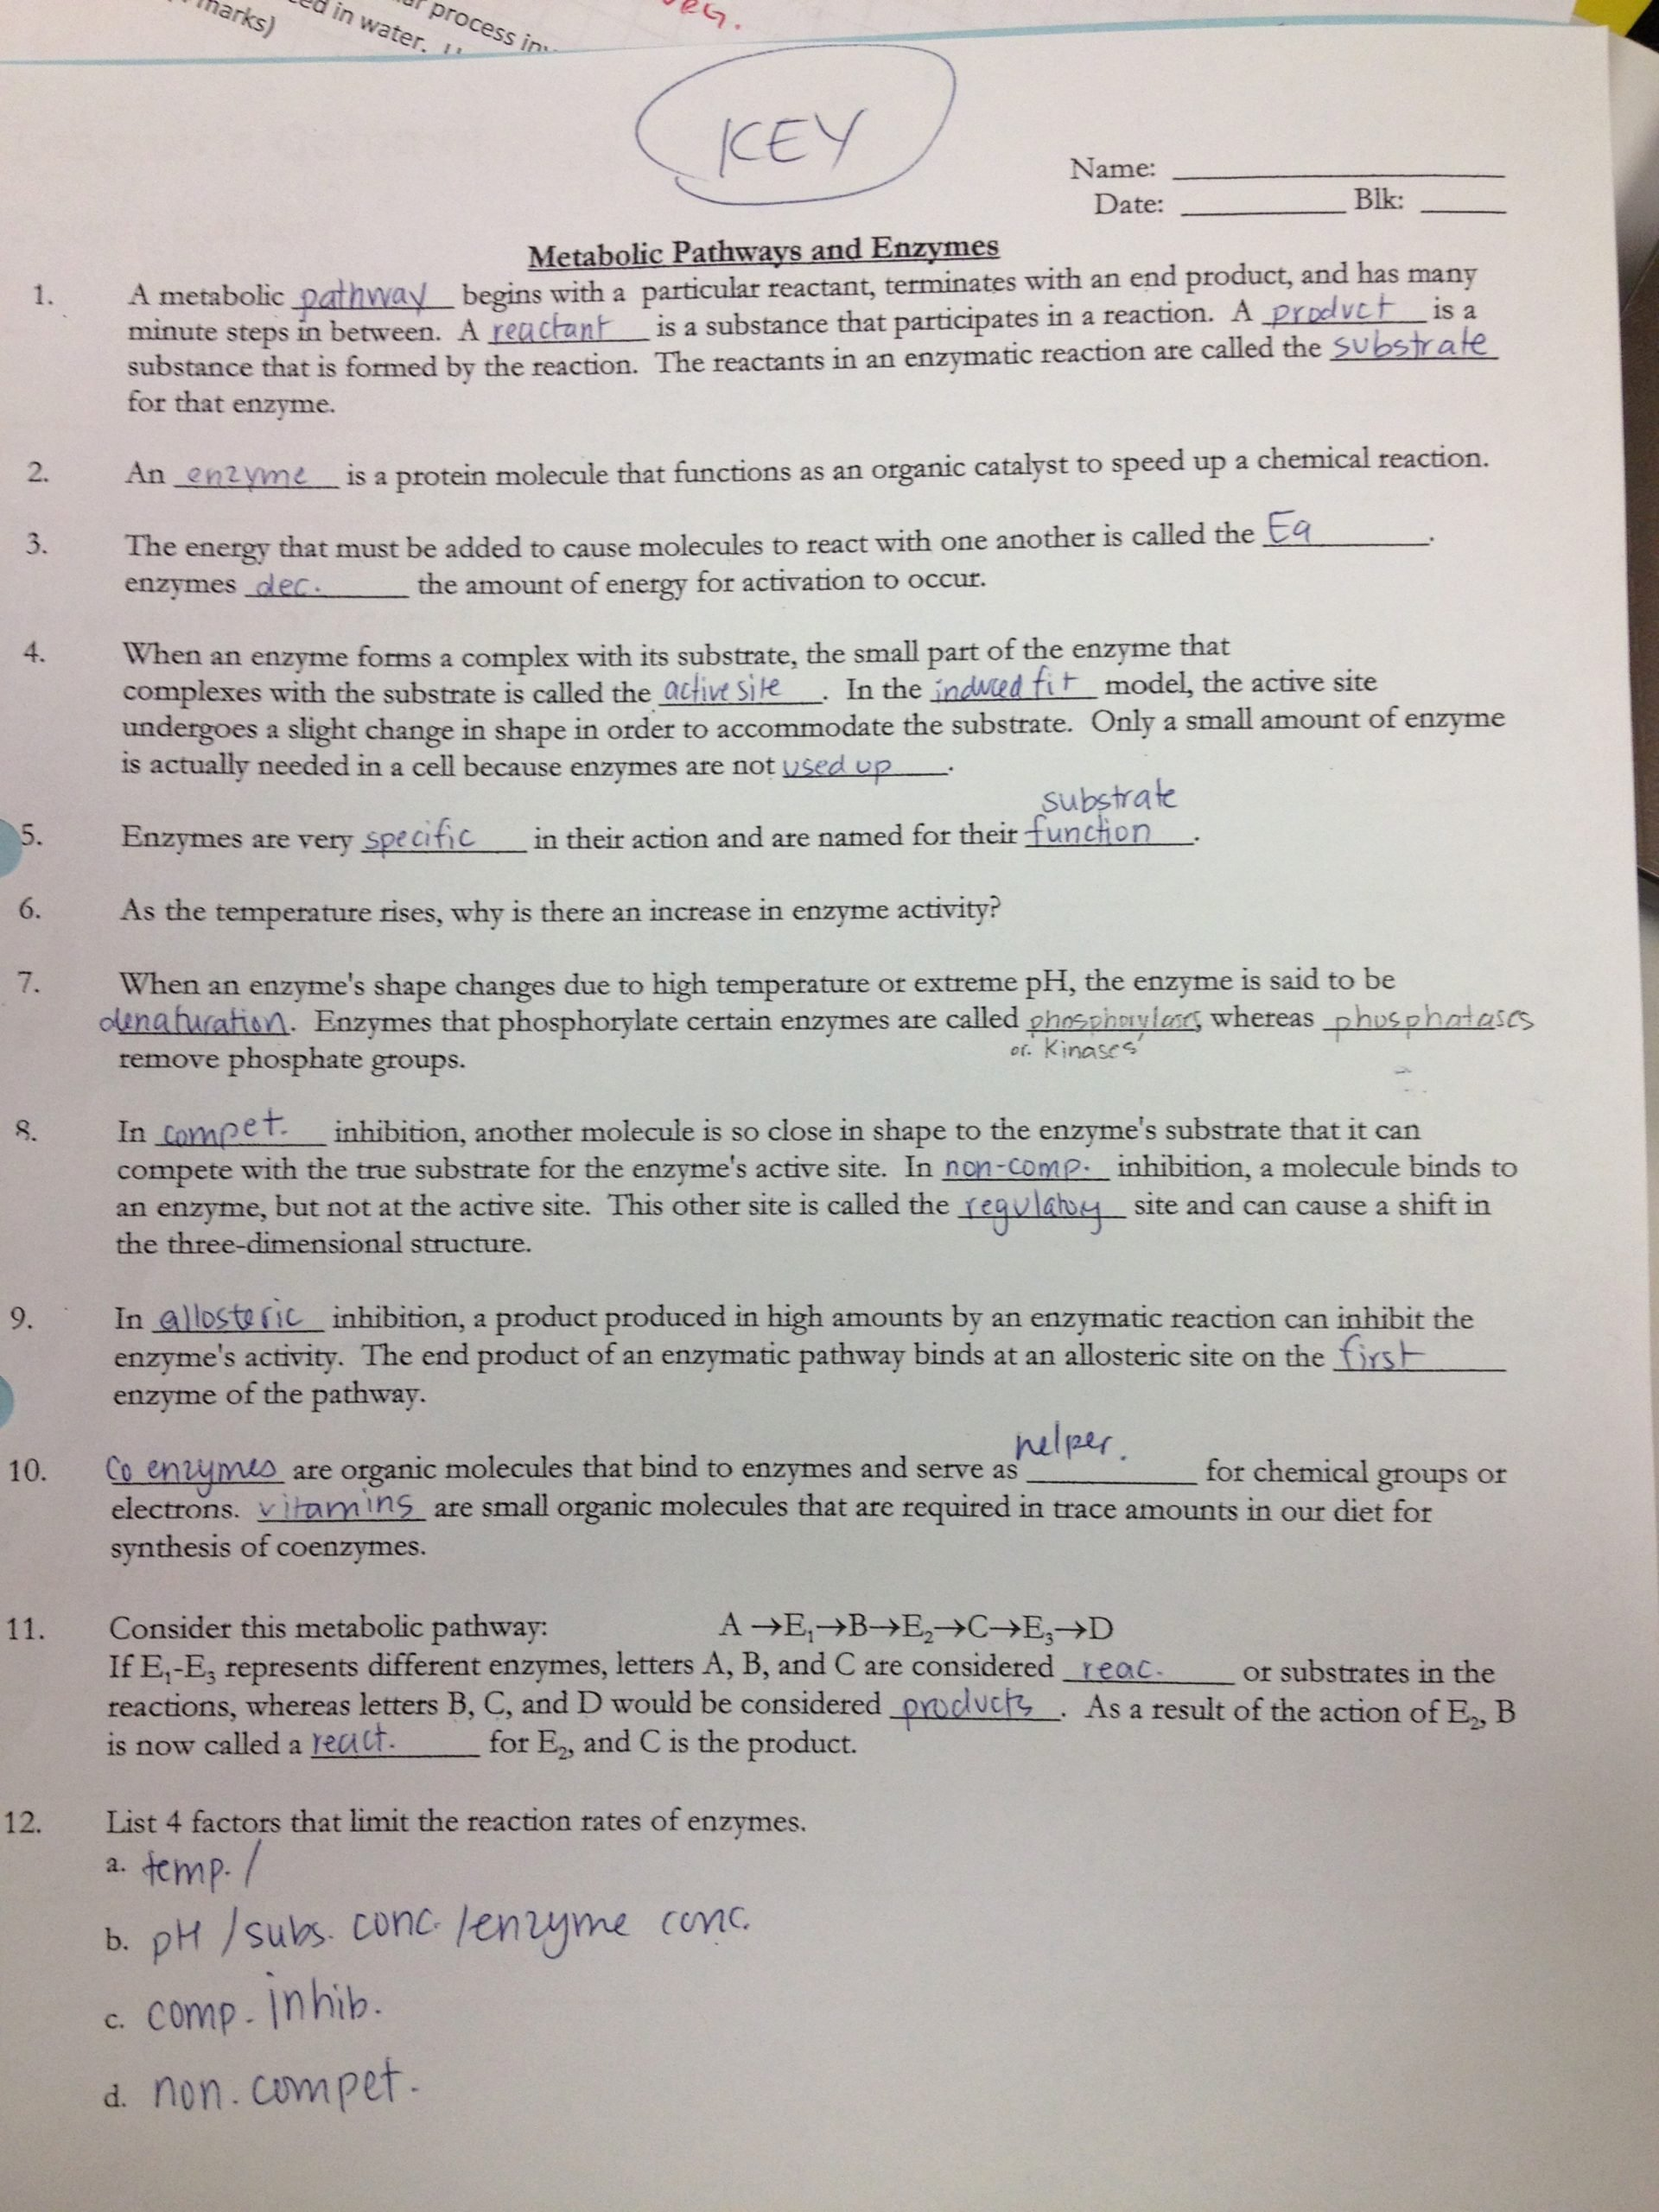 Enzyme Reactions Worksheet Answer Key Best Of Enzyme Worksheet Answers